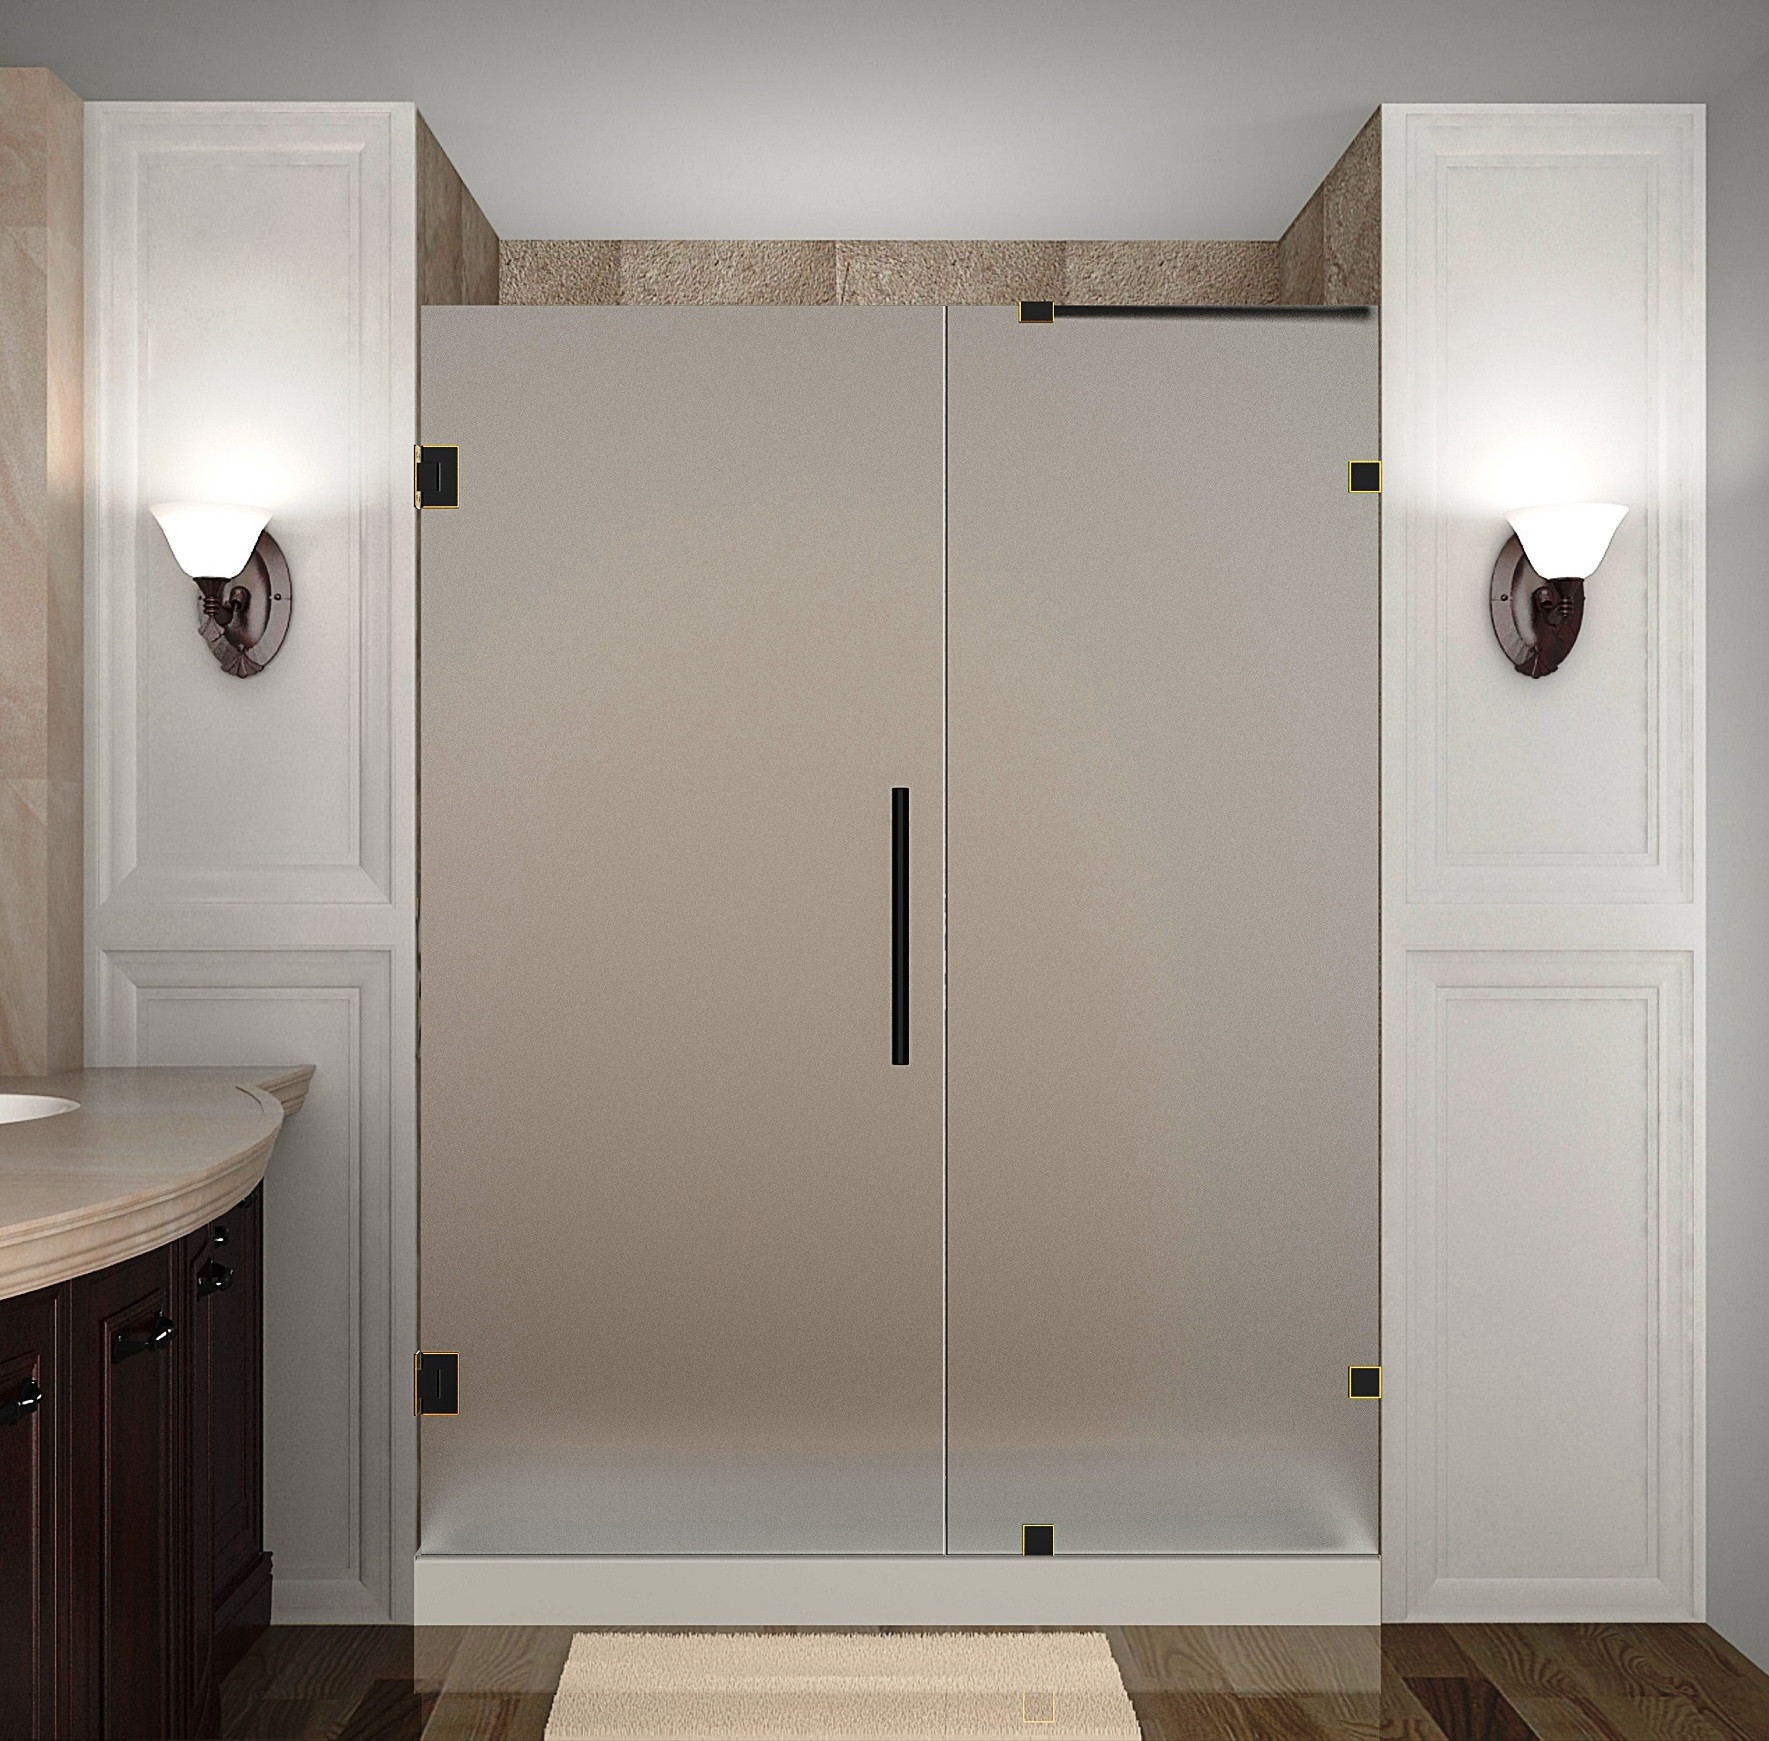 Aston Global SDR985F-ORB-67-10 Frameless Hinged Frosted Glass Shower Door In Oil Rubbed Bronze